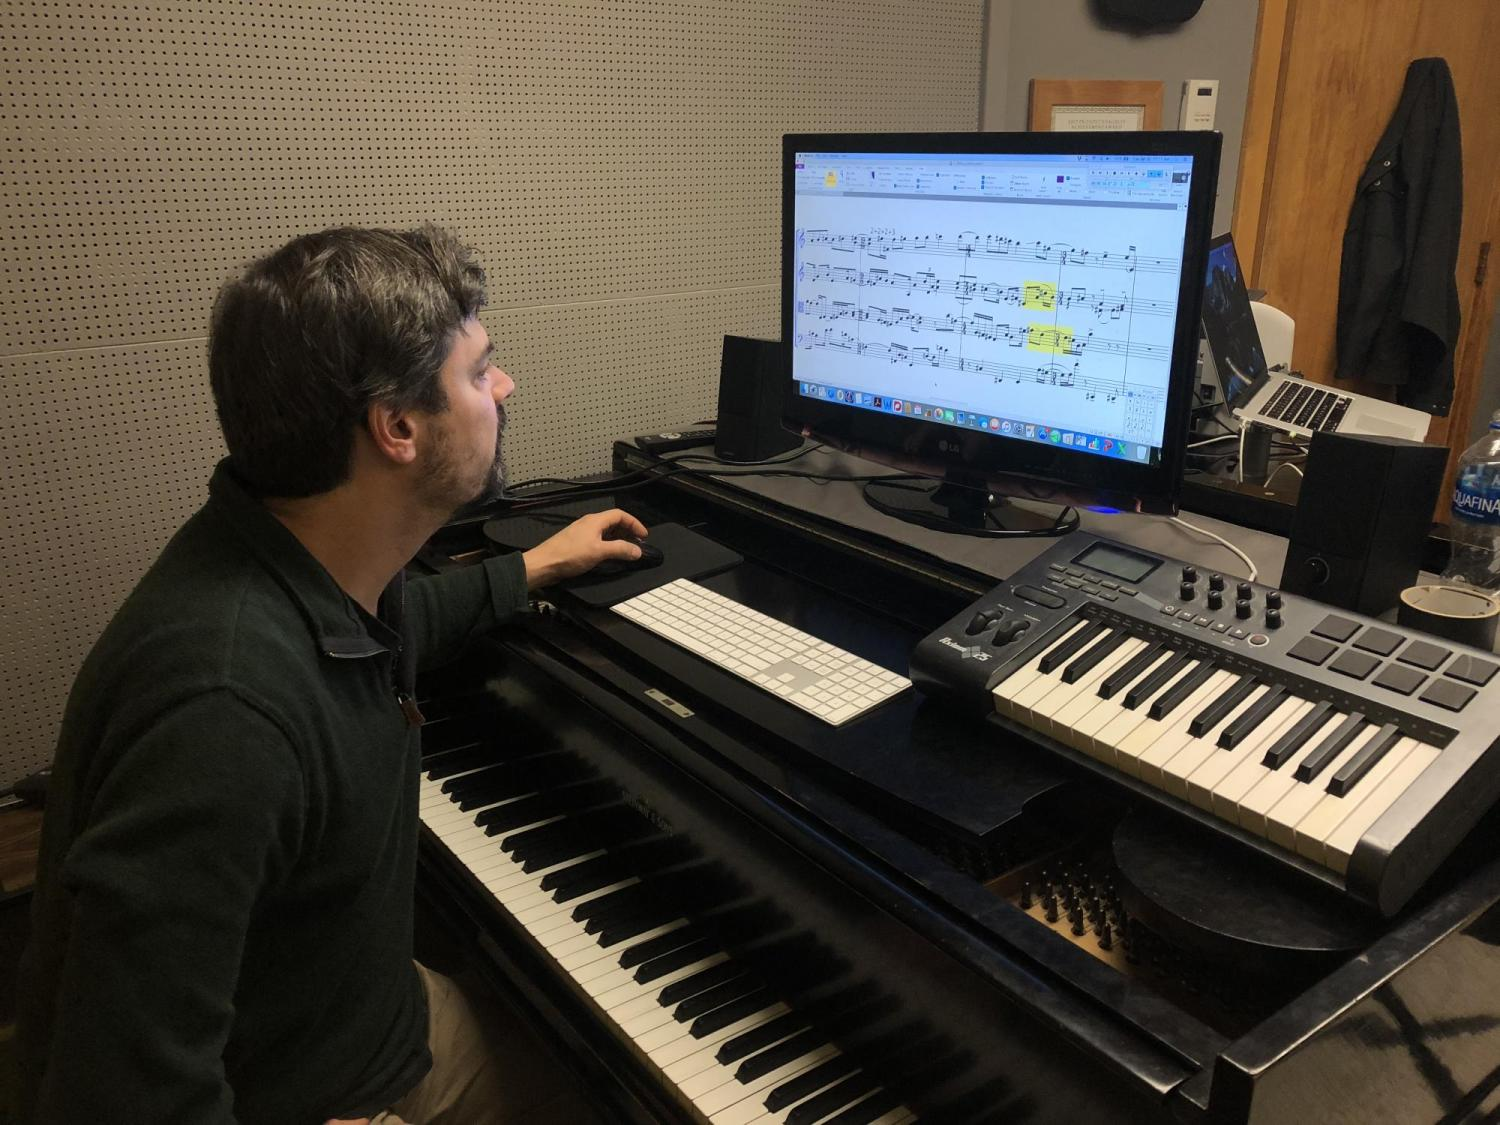 Associate Professor of Composition Carter Pann works on the new equipment in his office, purchased with help from the new Christoffersen Faculty Fellowship in Composition.